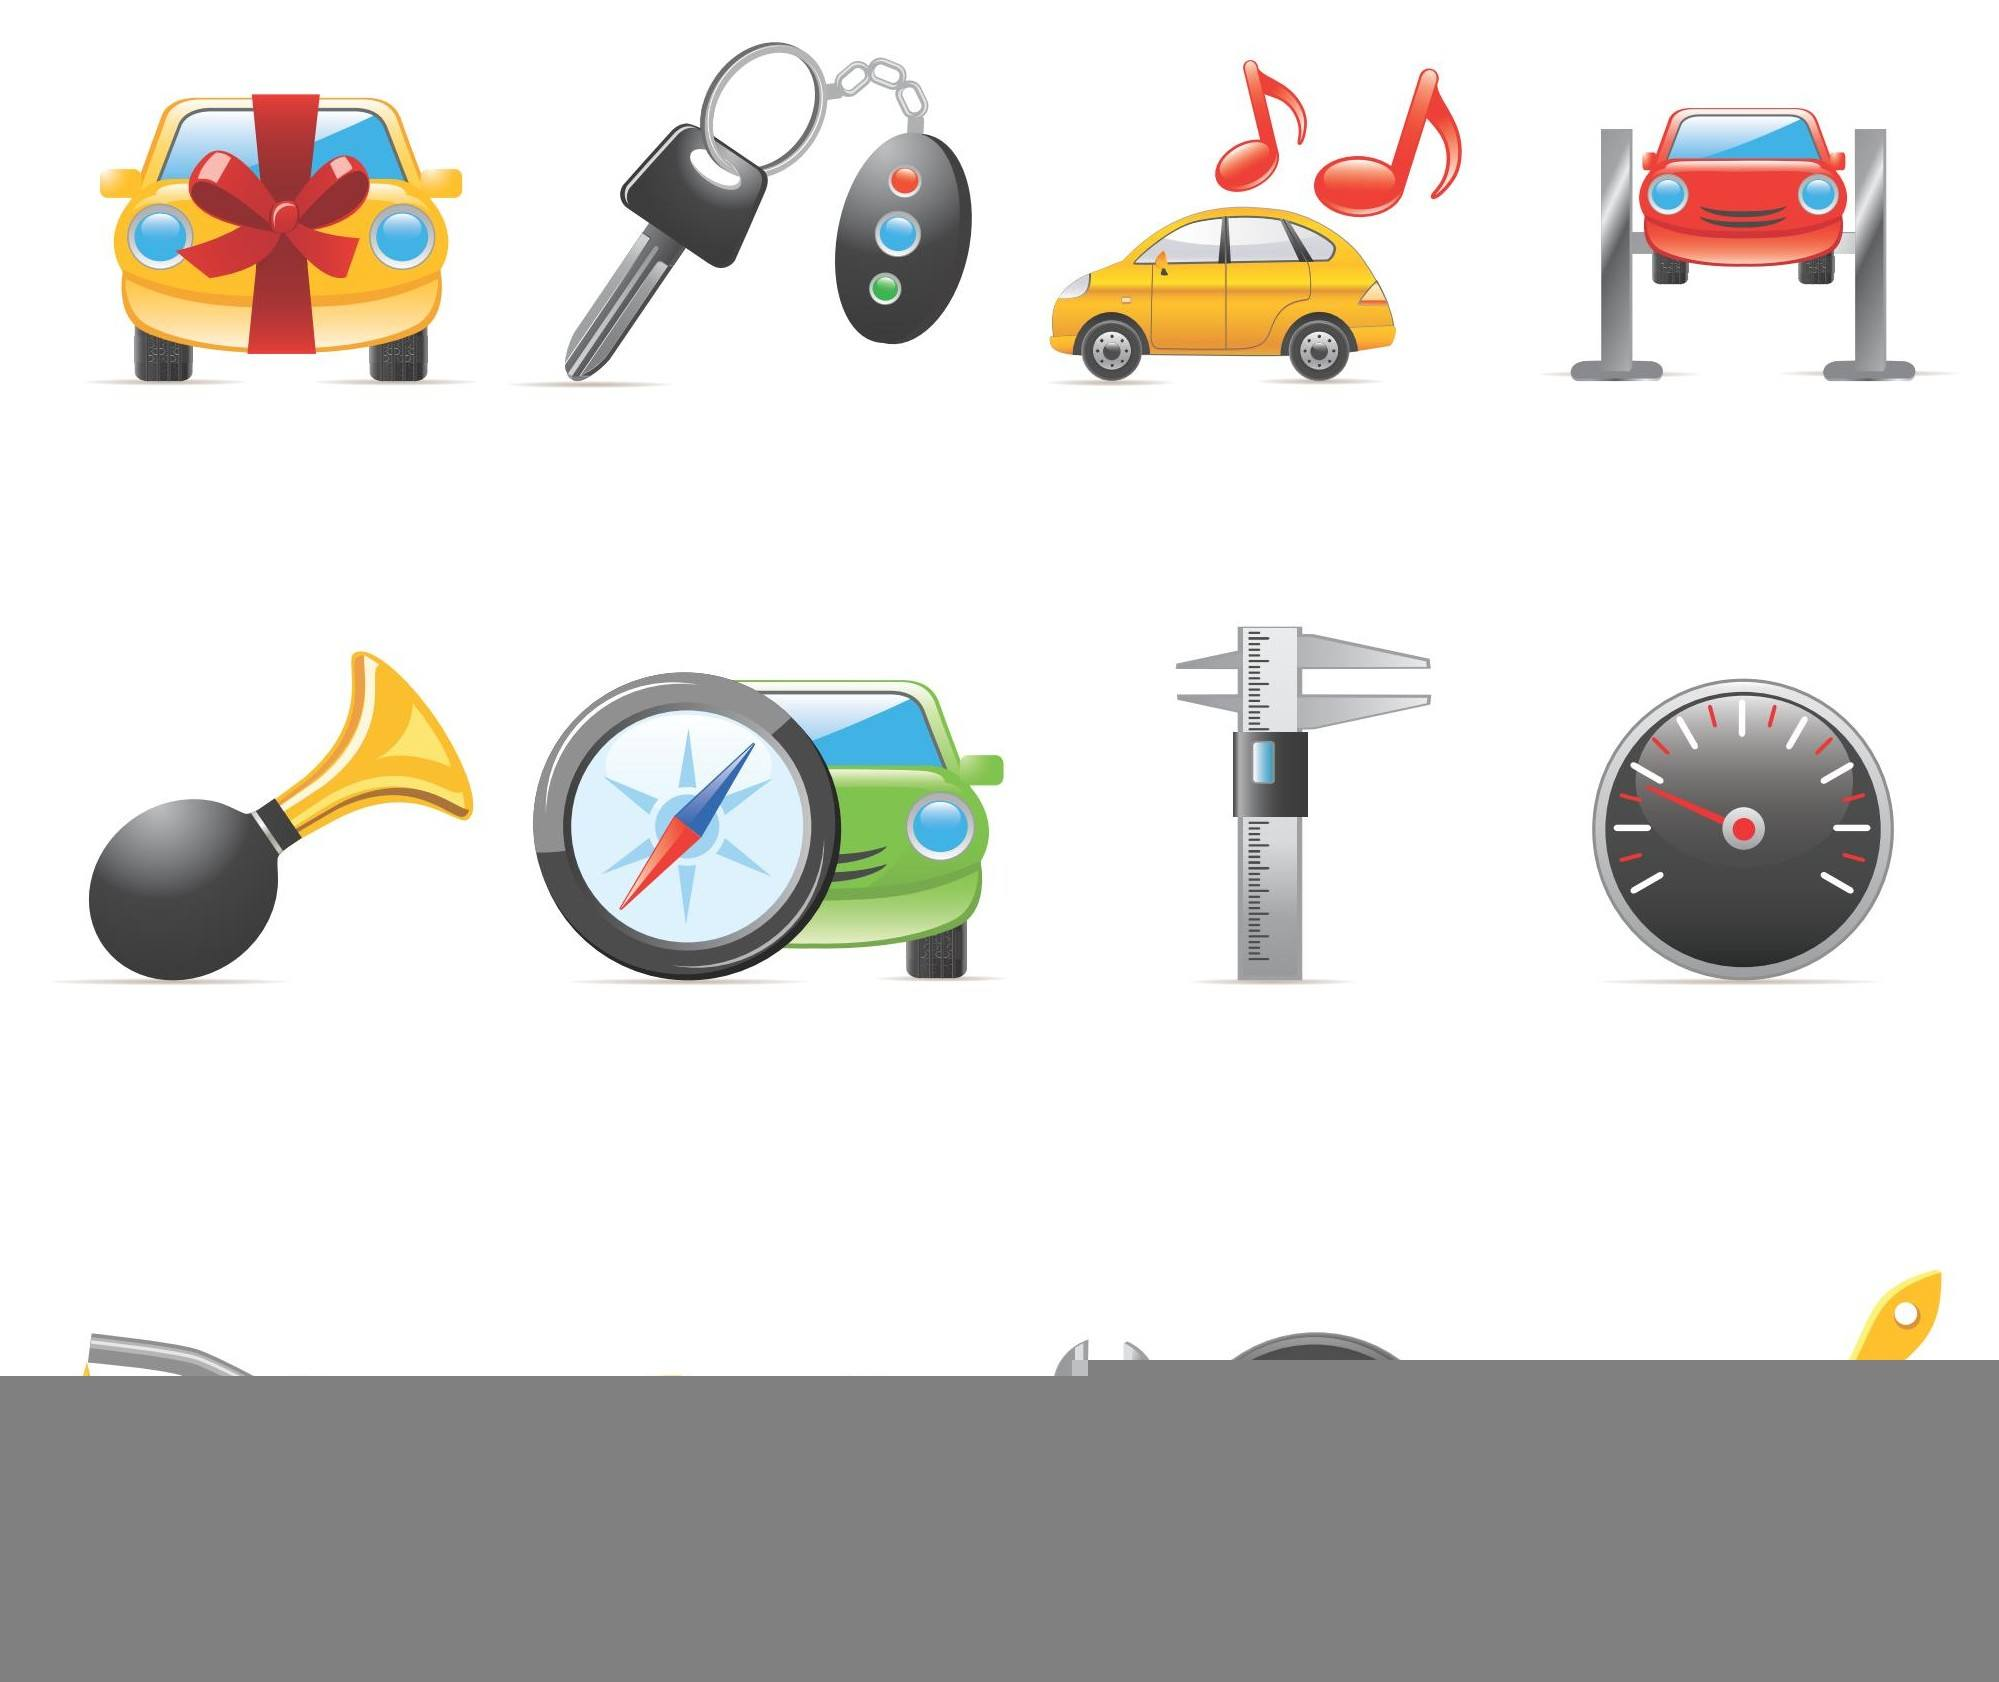 Car peripheral products icons 01 vector